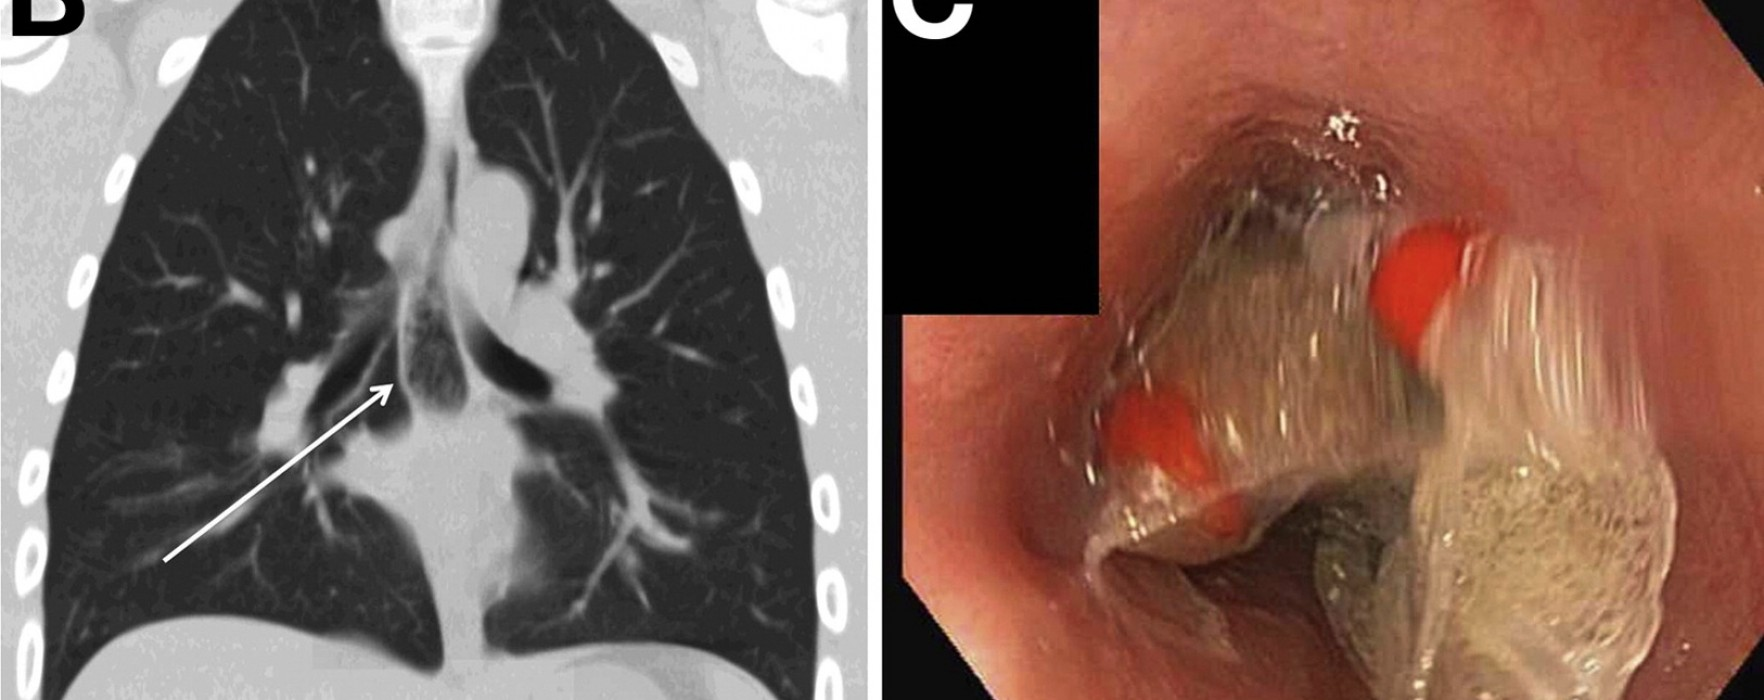 What is the Best Way to Remove a Bag of Methamphetamine From the Esophagus?